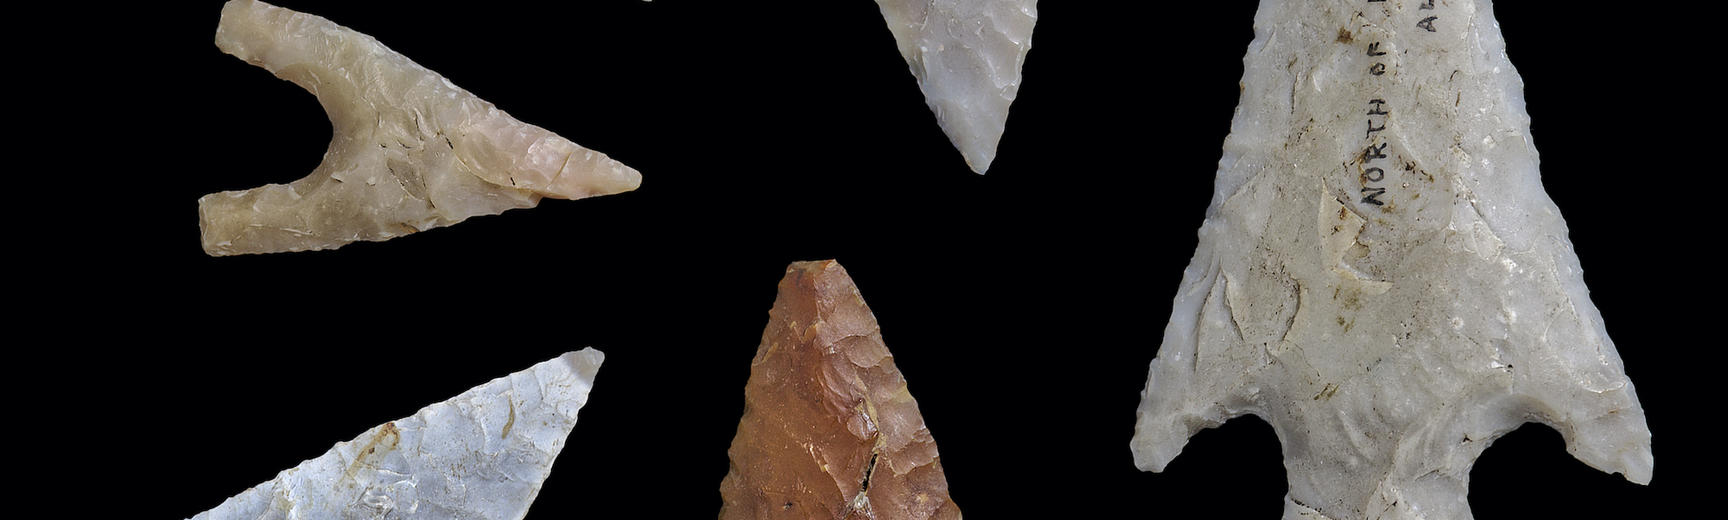 Six arrowheads in range of shapes from a leaf to a triangular point with a central projection at the base (tang) with smaller points (barbs) on either side.